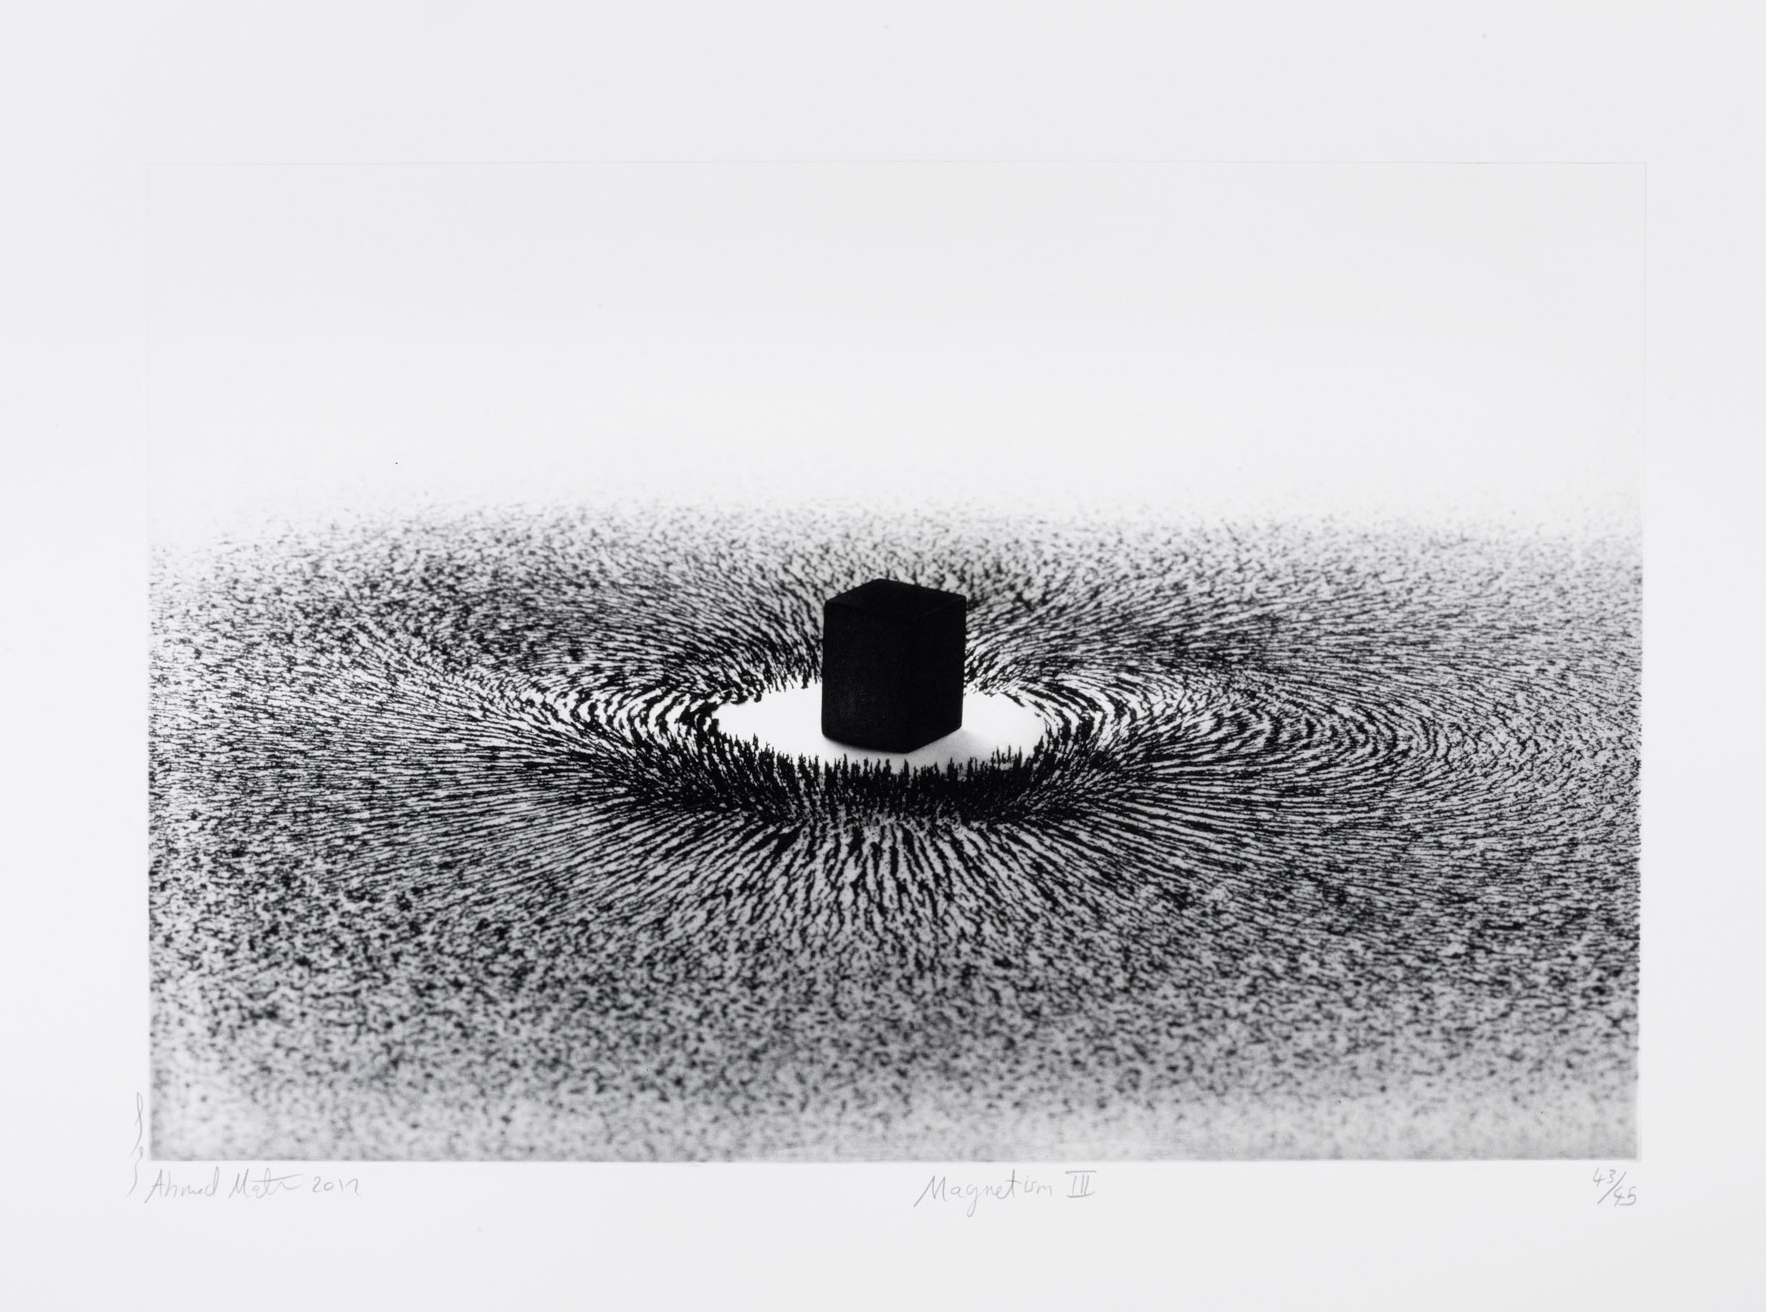 Magnetism I – IV Limited edition, no. 43 of 45 of four etchings by Ahmad Mater